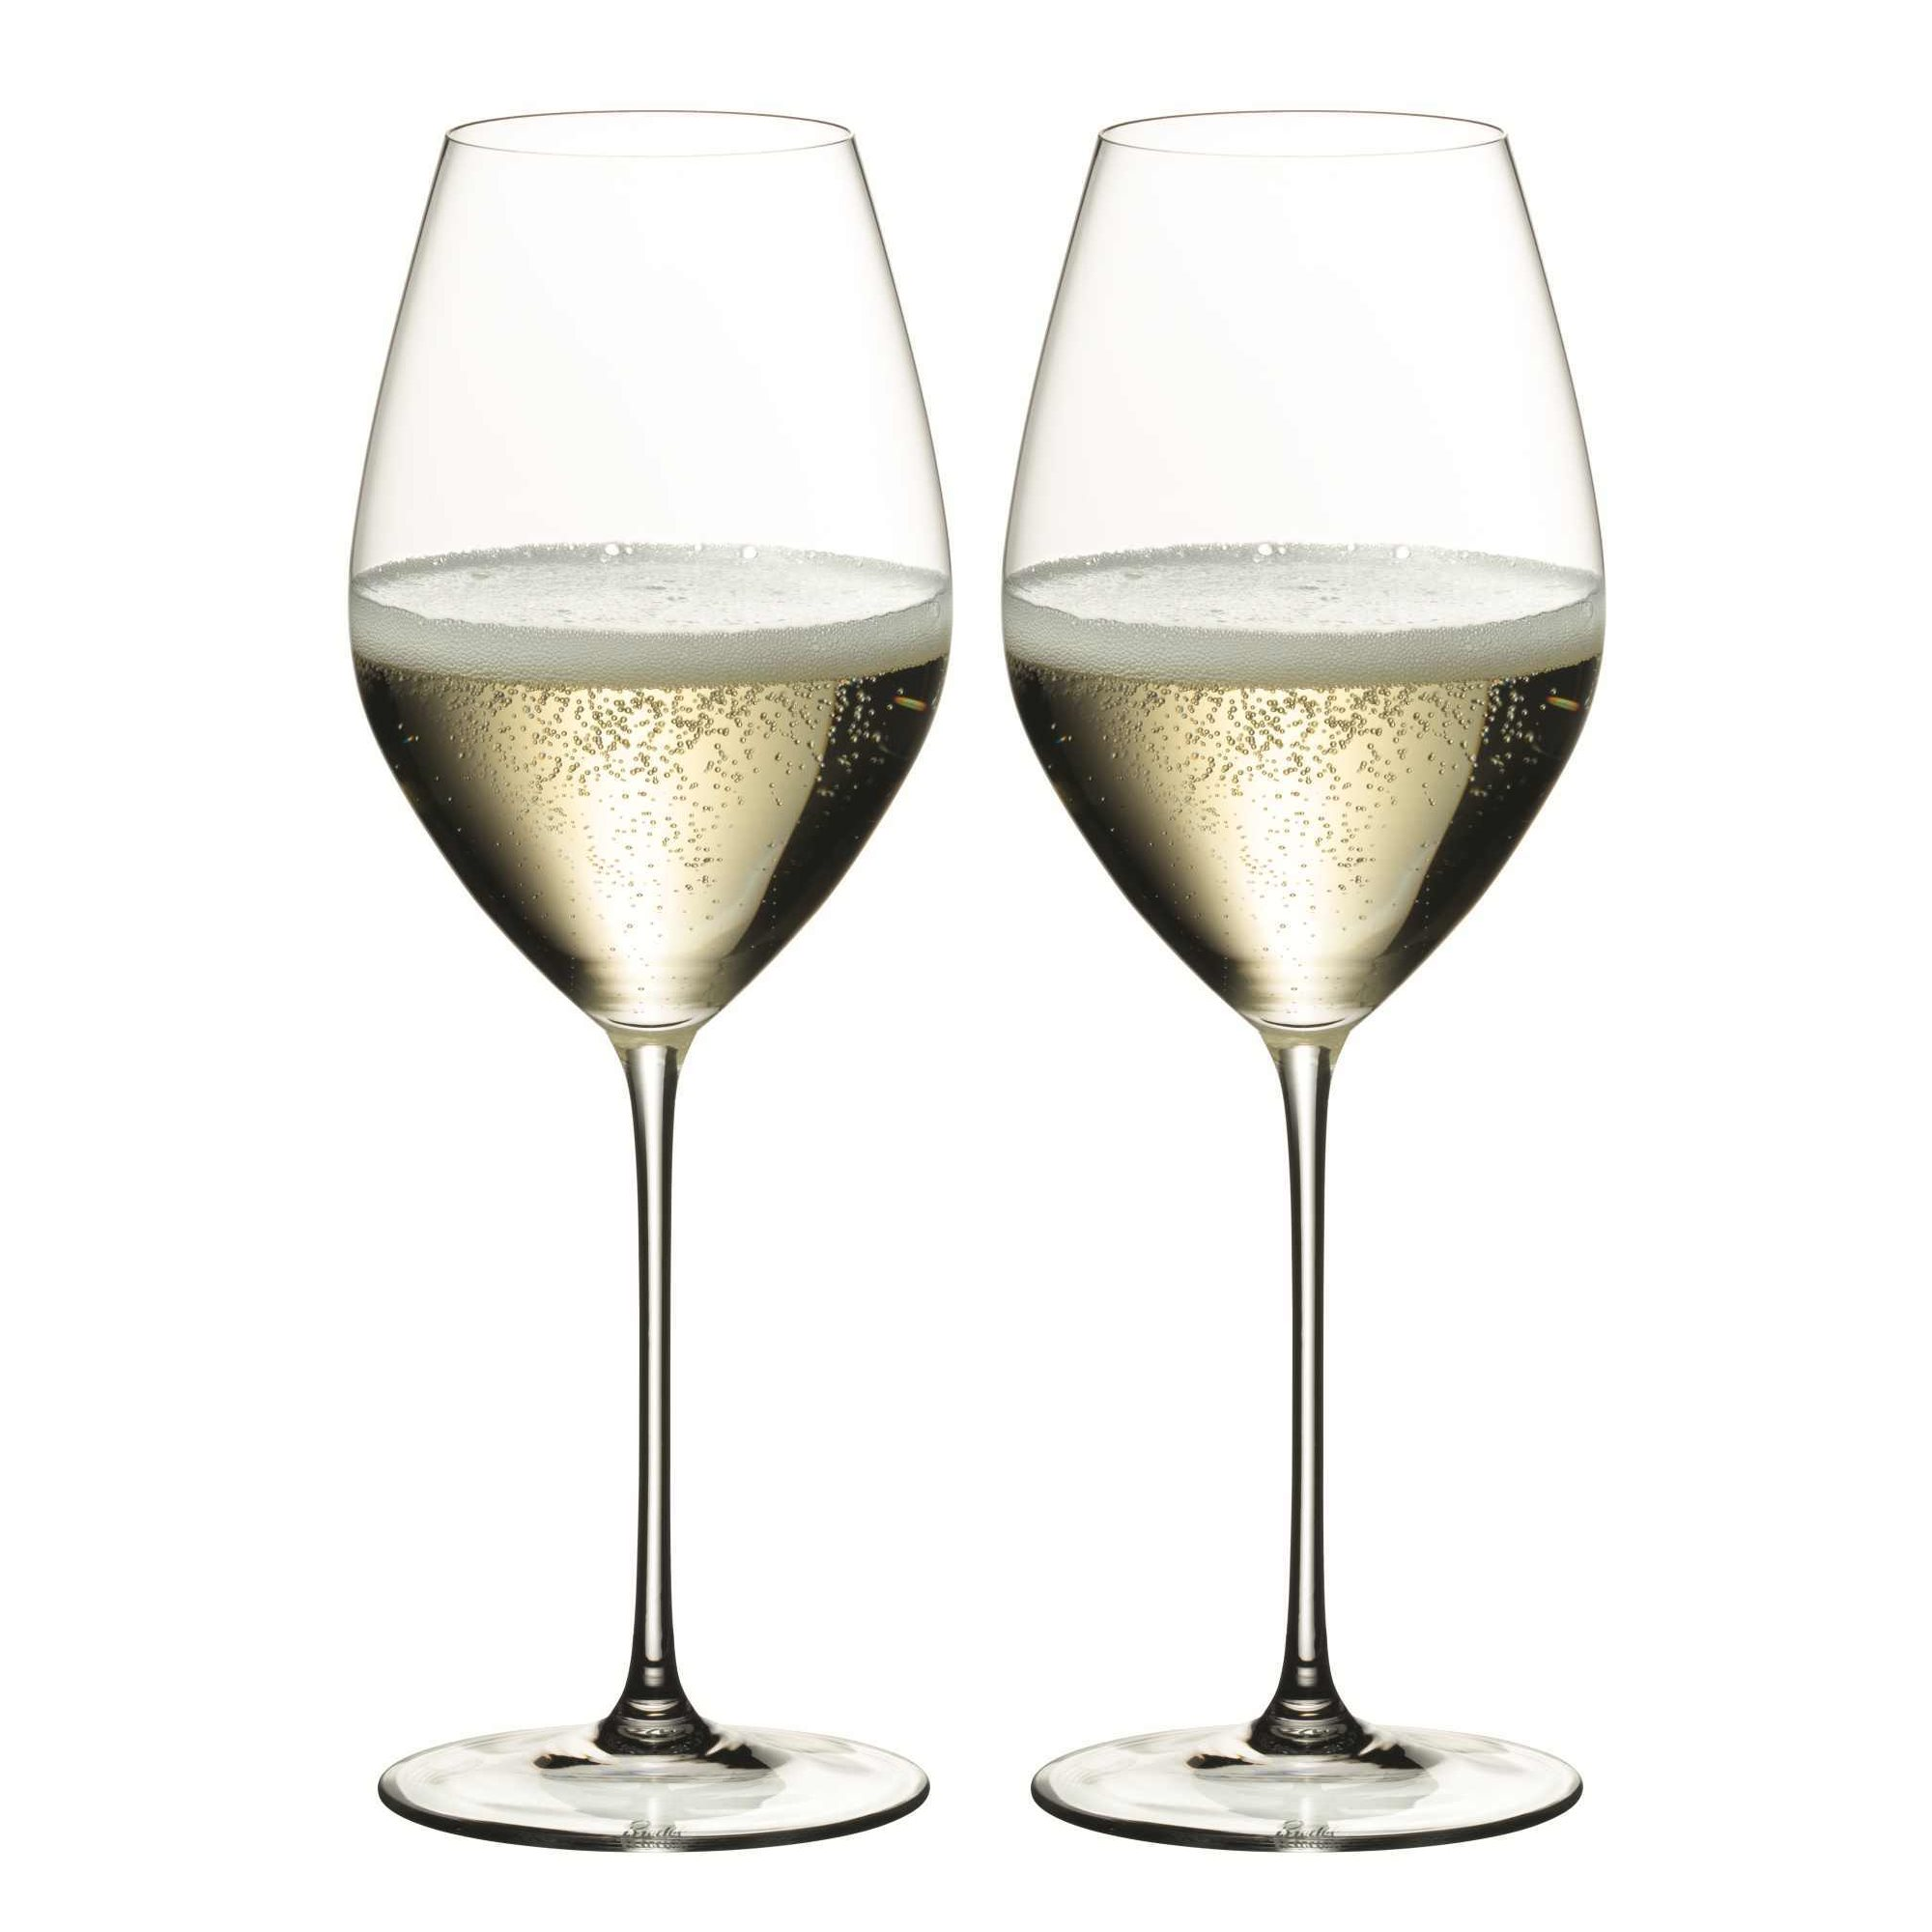 Riedel Glas Riedel Series Veritas Champagne Flute 2 Piece Capacity 445 Ml Champagne